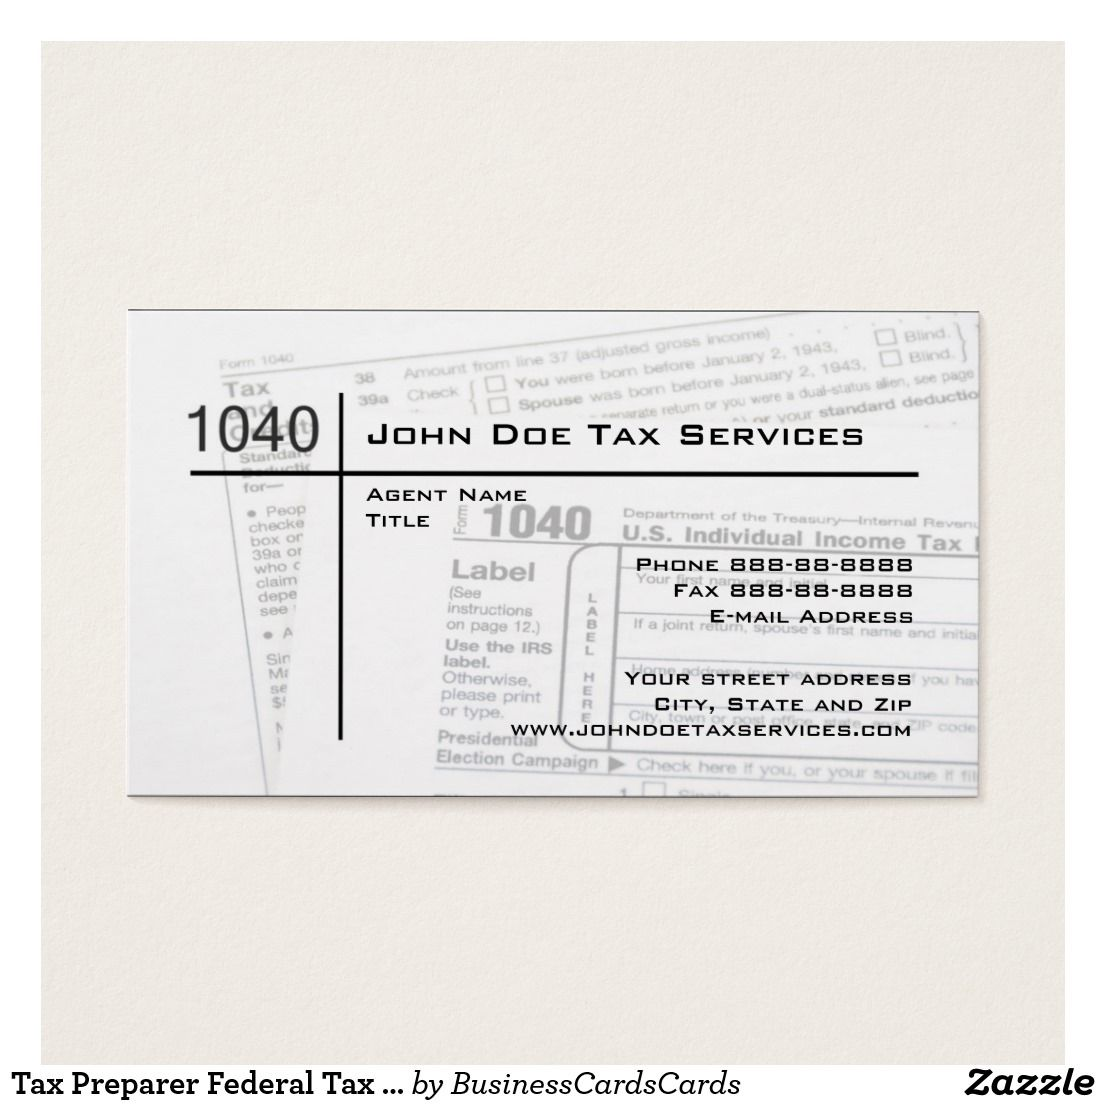 Tax preparer federal tax form business card accountant bookkeeper tax preparer federal tax form business card accountant bookkeeper bookkeeping tax preparer custom check out magicingreecefo Gallery